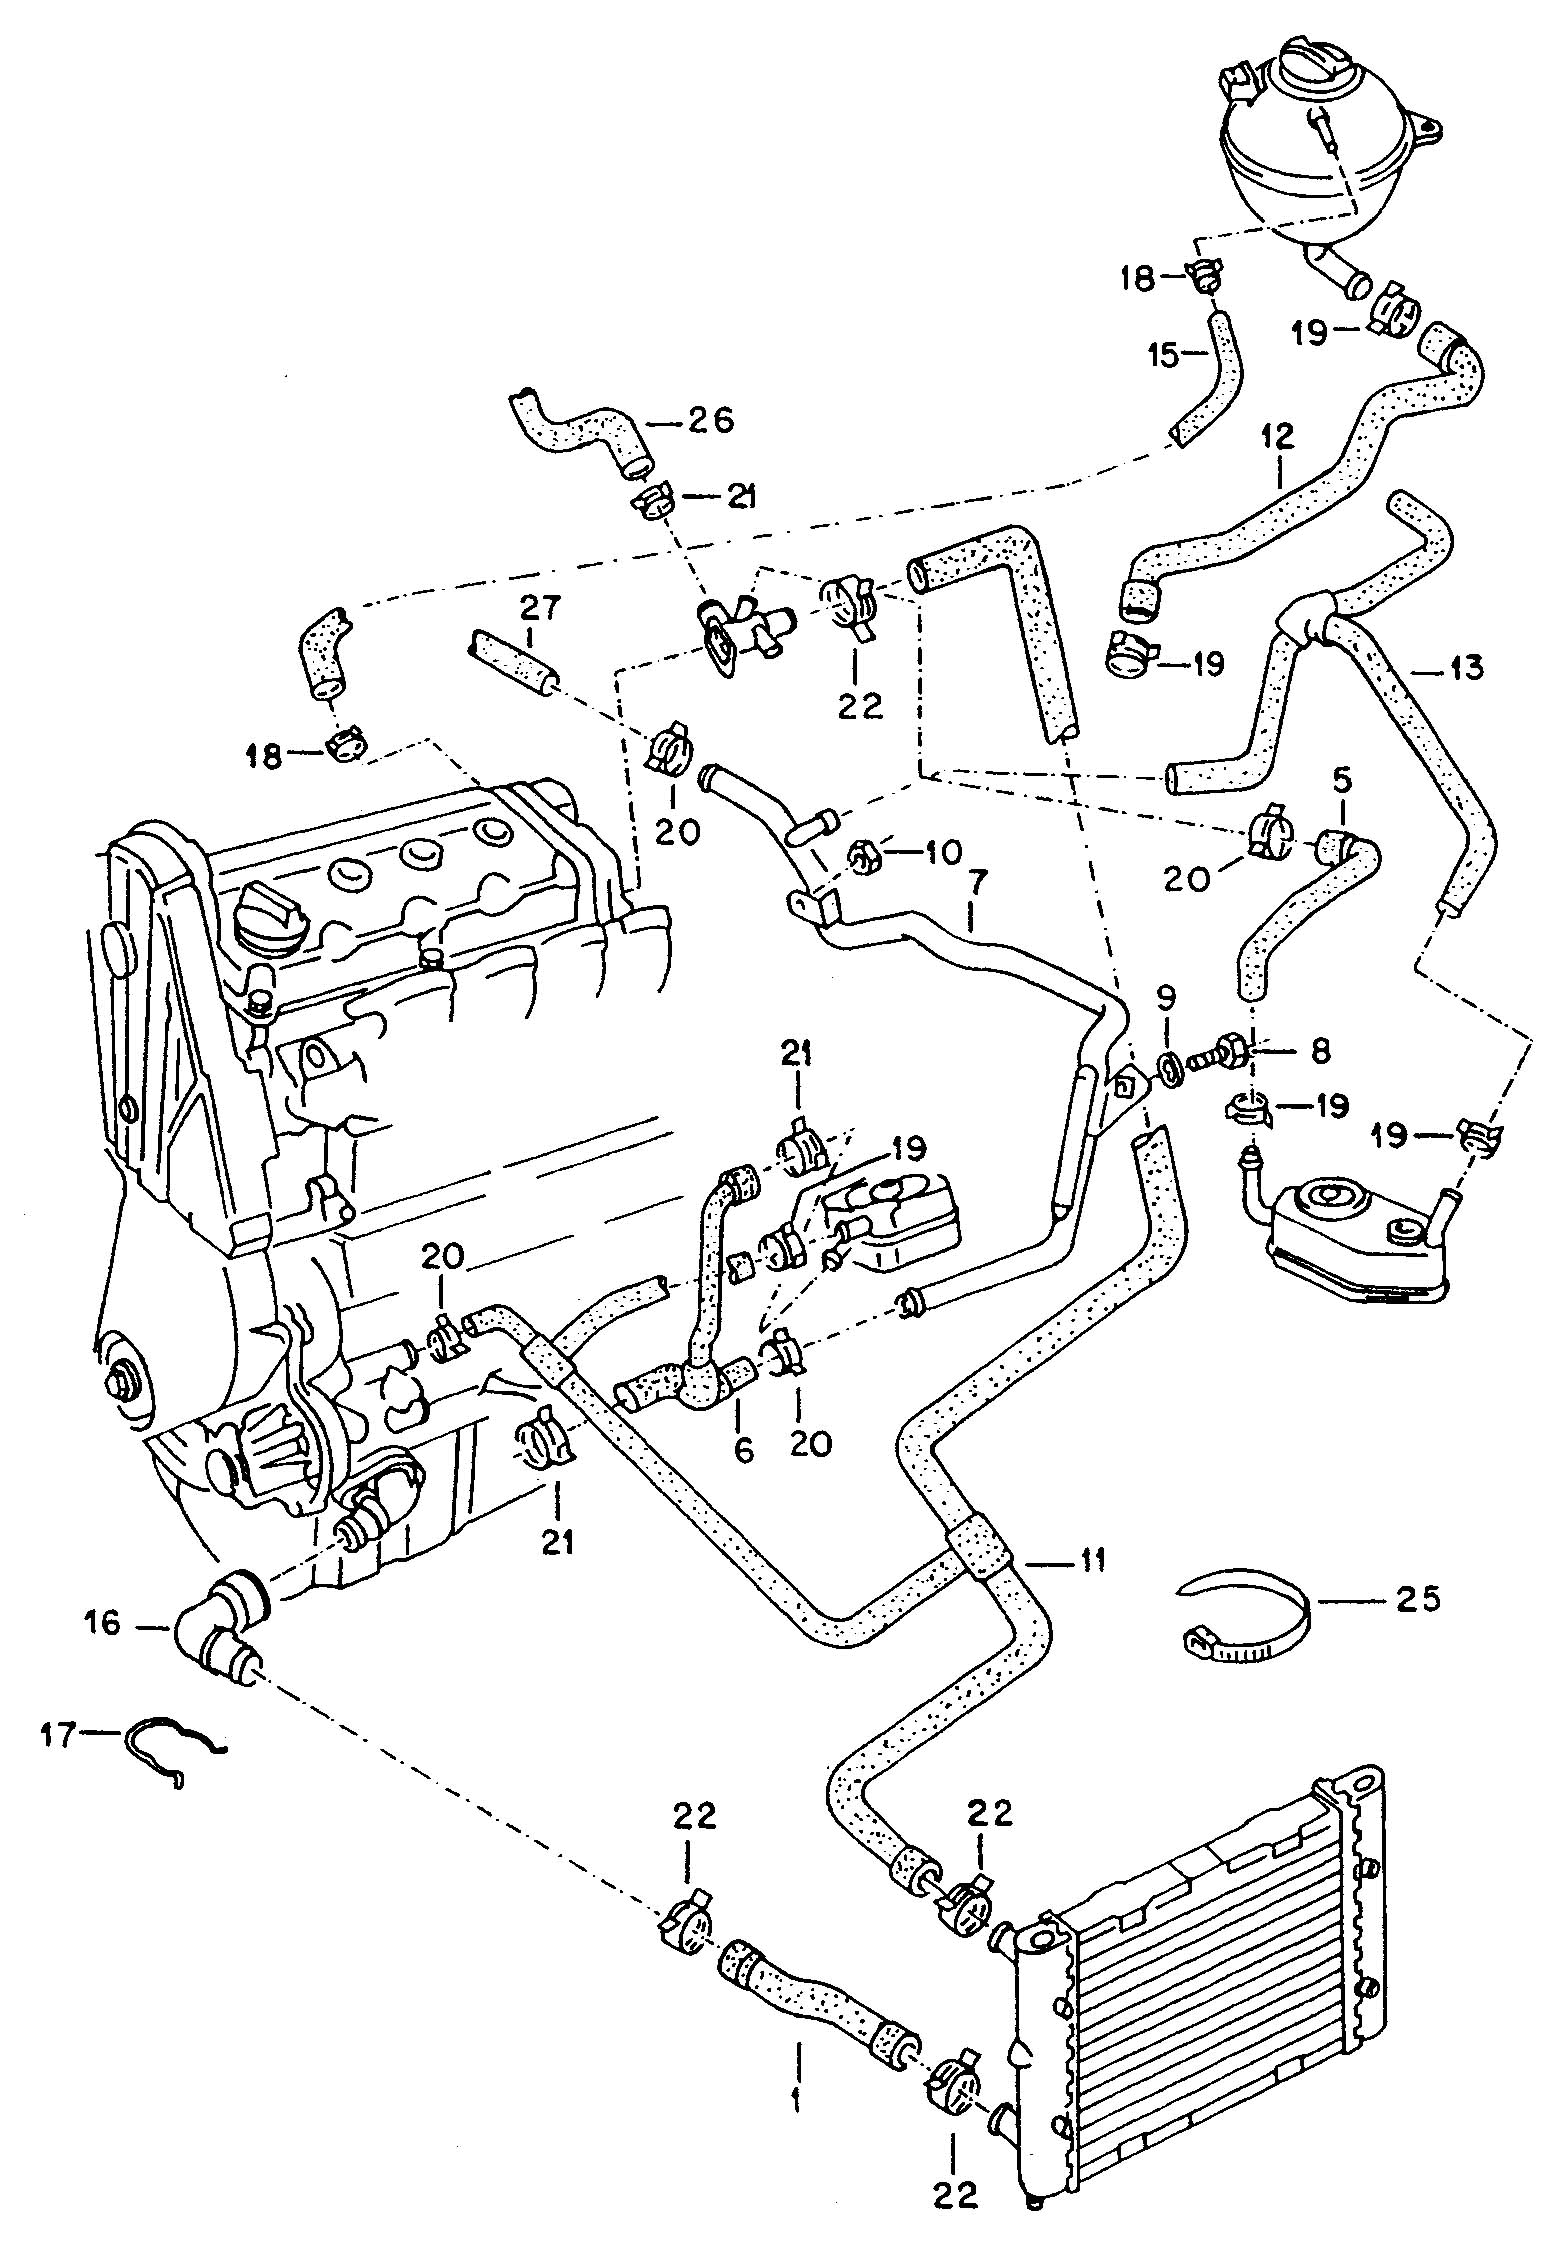 2001 Vw Jetta Vr6 Engine Diagram Within Diagram Wiring And